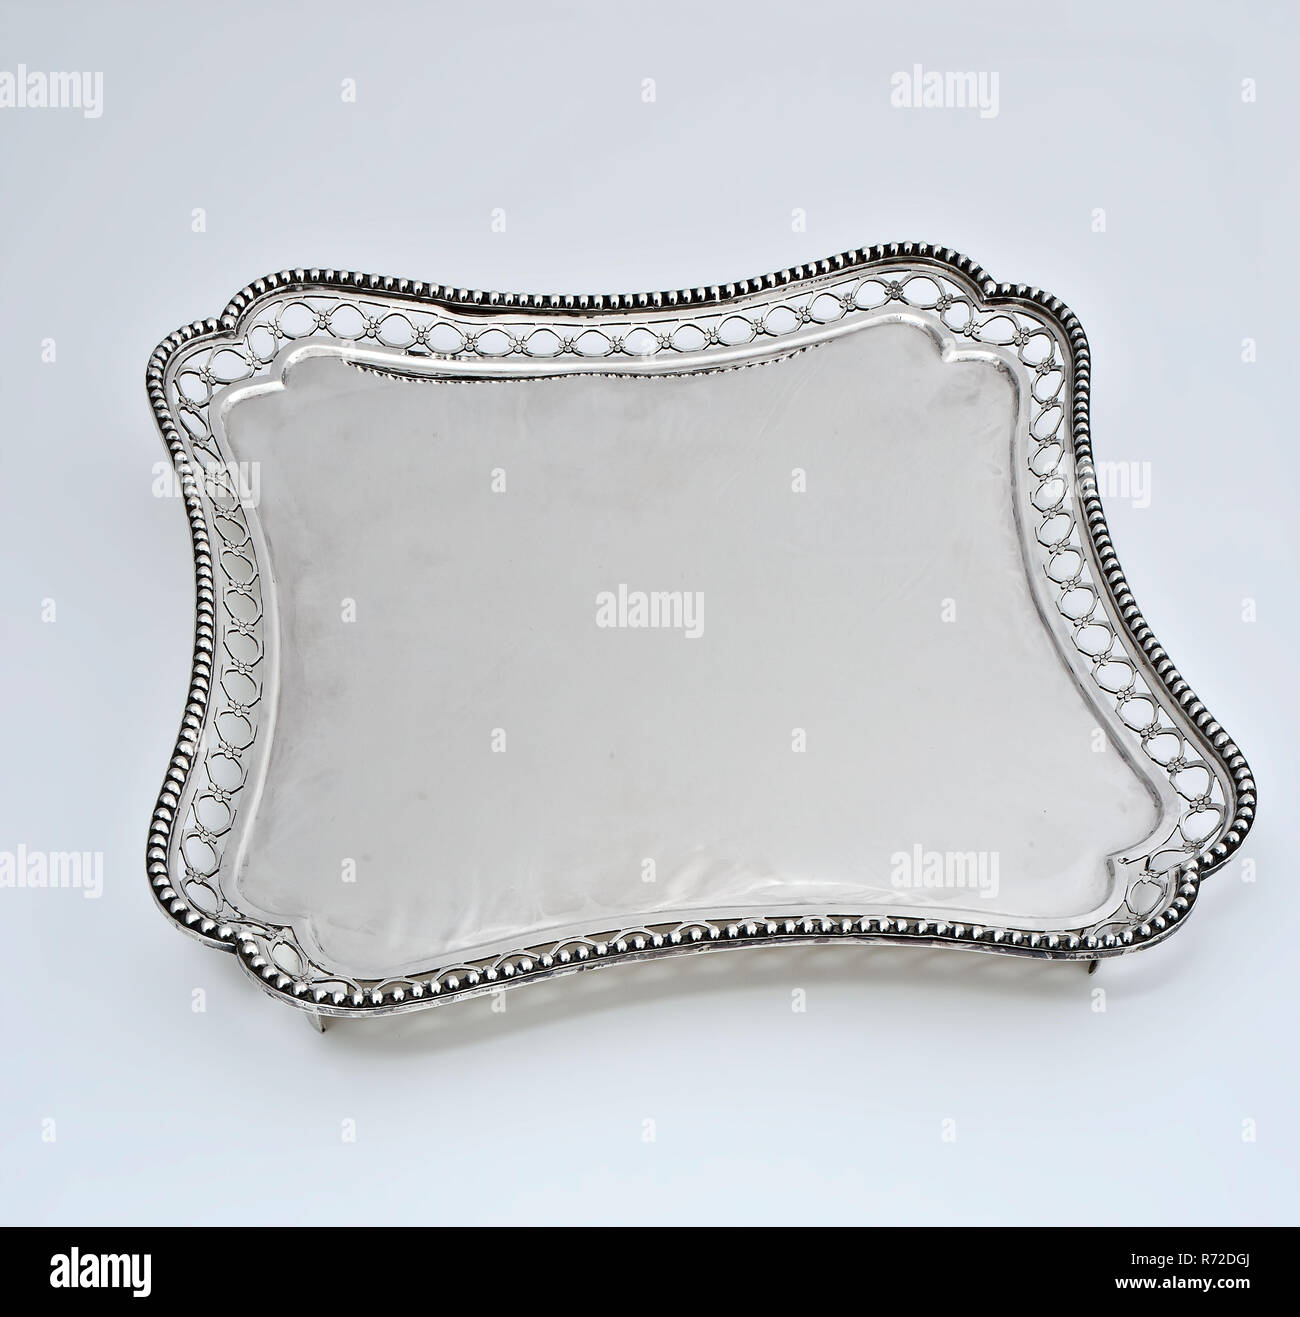 Silversmith: Cornelis Knuijsting, Square silver tray on legs with openwork edge, tray leaf holder silver, cast sawn Square leaf with swiveling side edges and brace-shaped curved corners on four smooth legs bottom bottom (debossed) serving - Stock Image